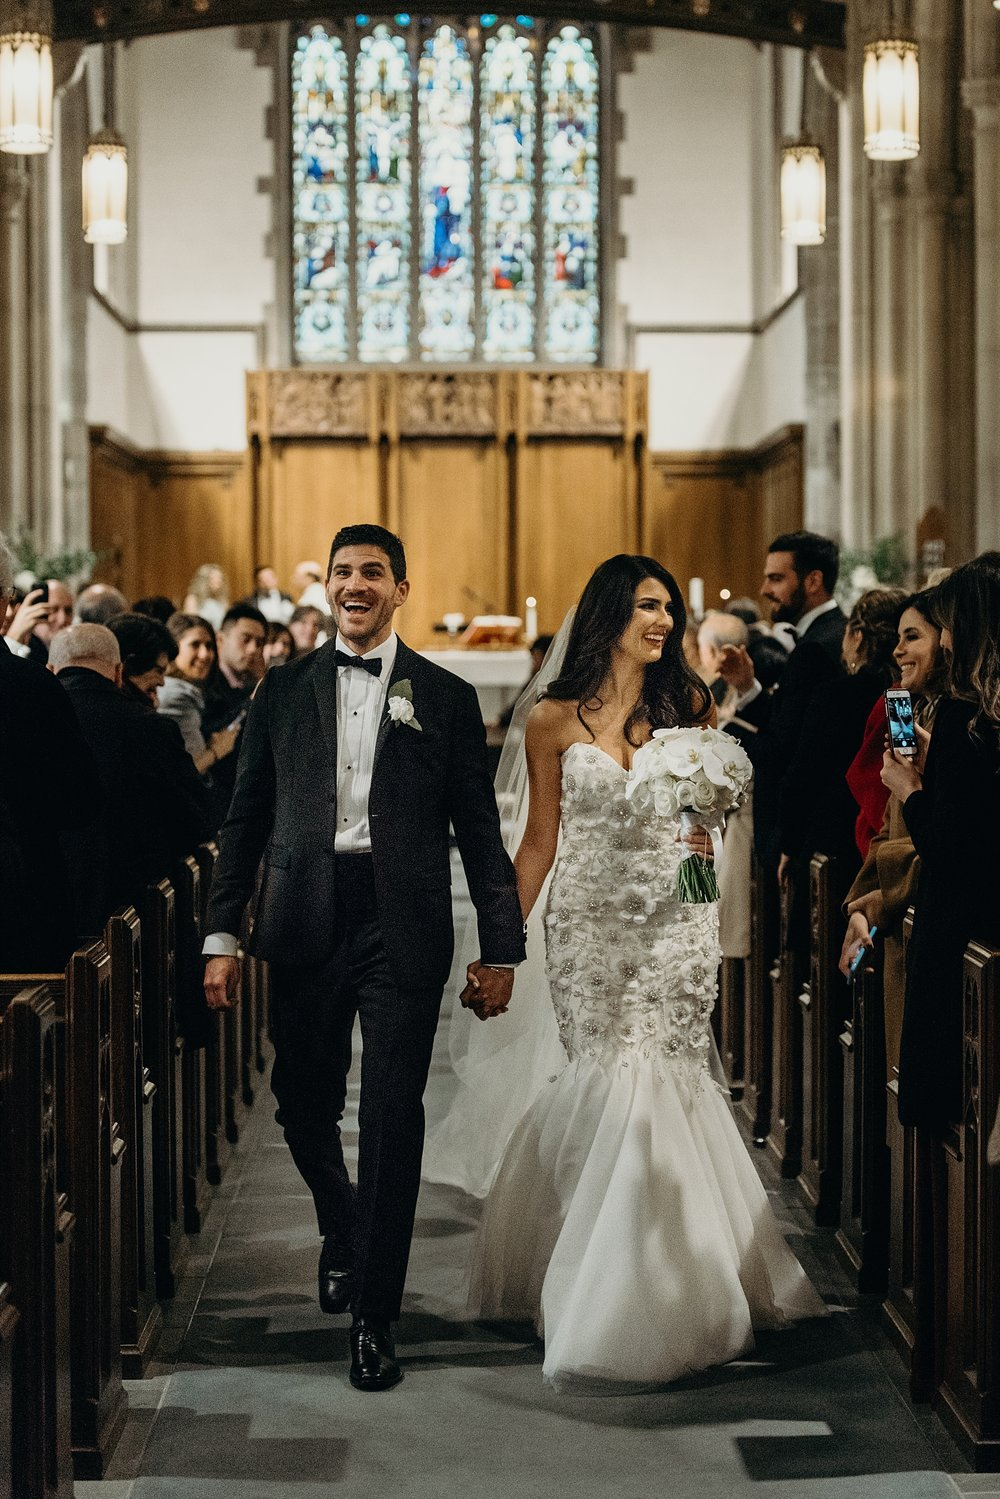 Mocha Tree Studios Ottawa Wedding and Engagement Photographer and Videographer Dark Moody Intimate Authentic Modern Romantic Cinematic Best Candid Toronto